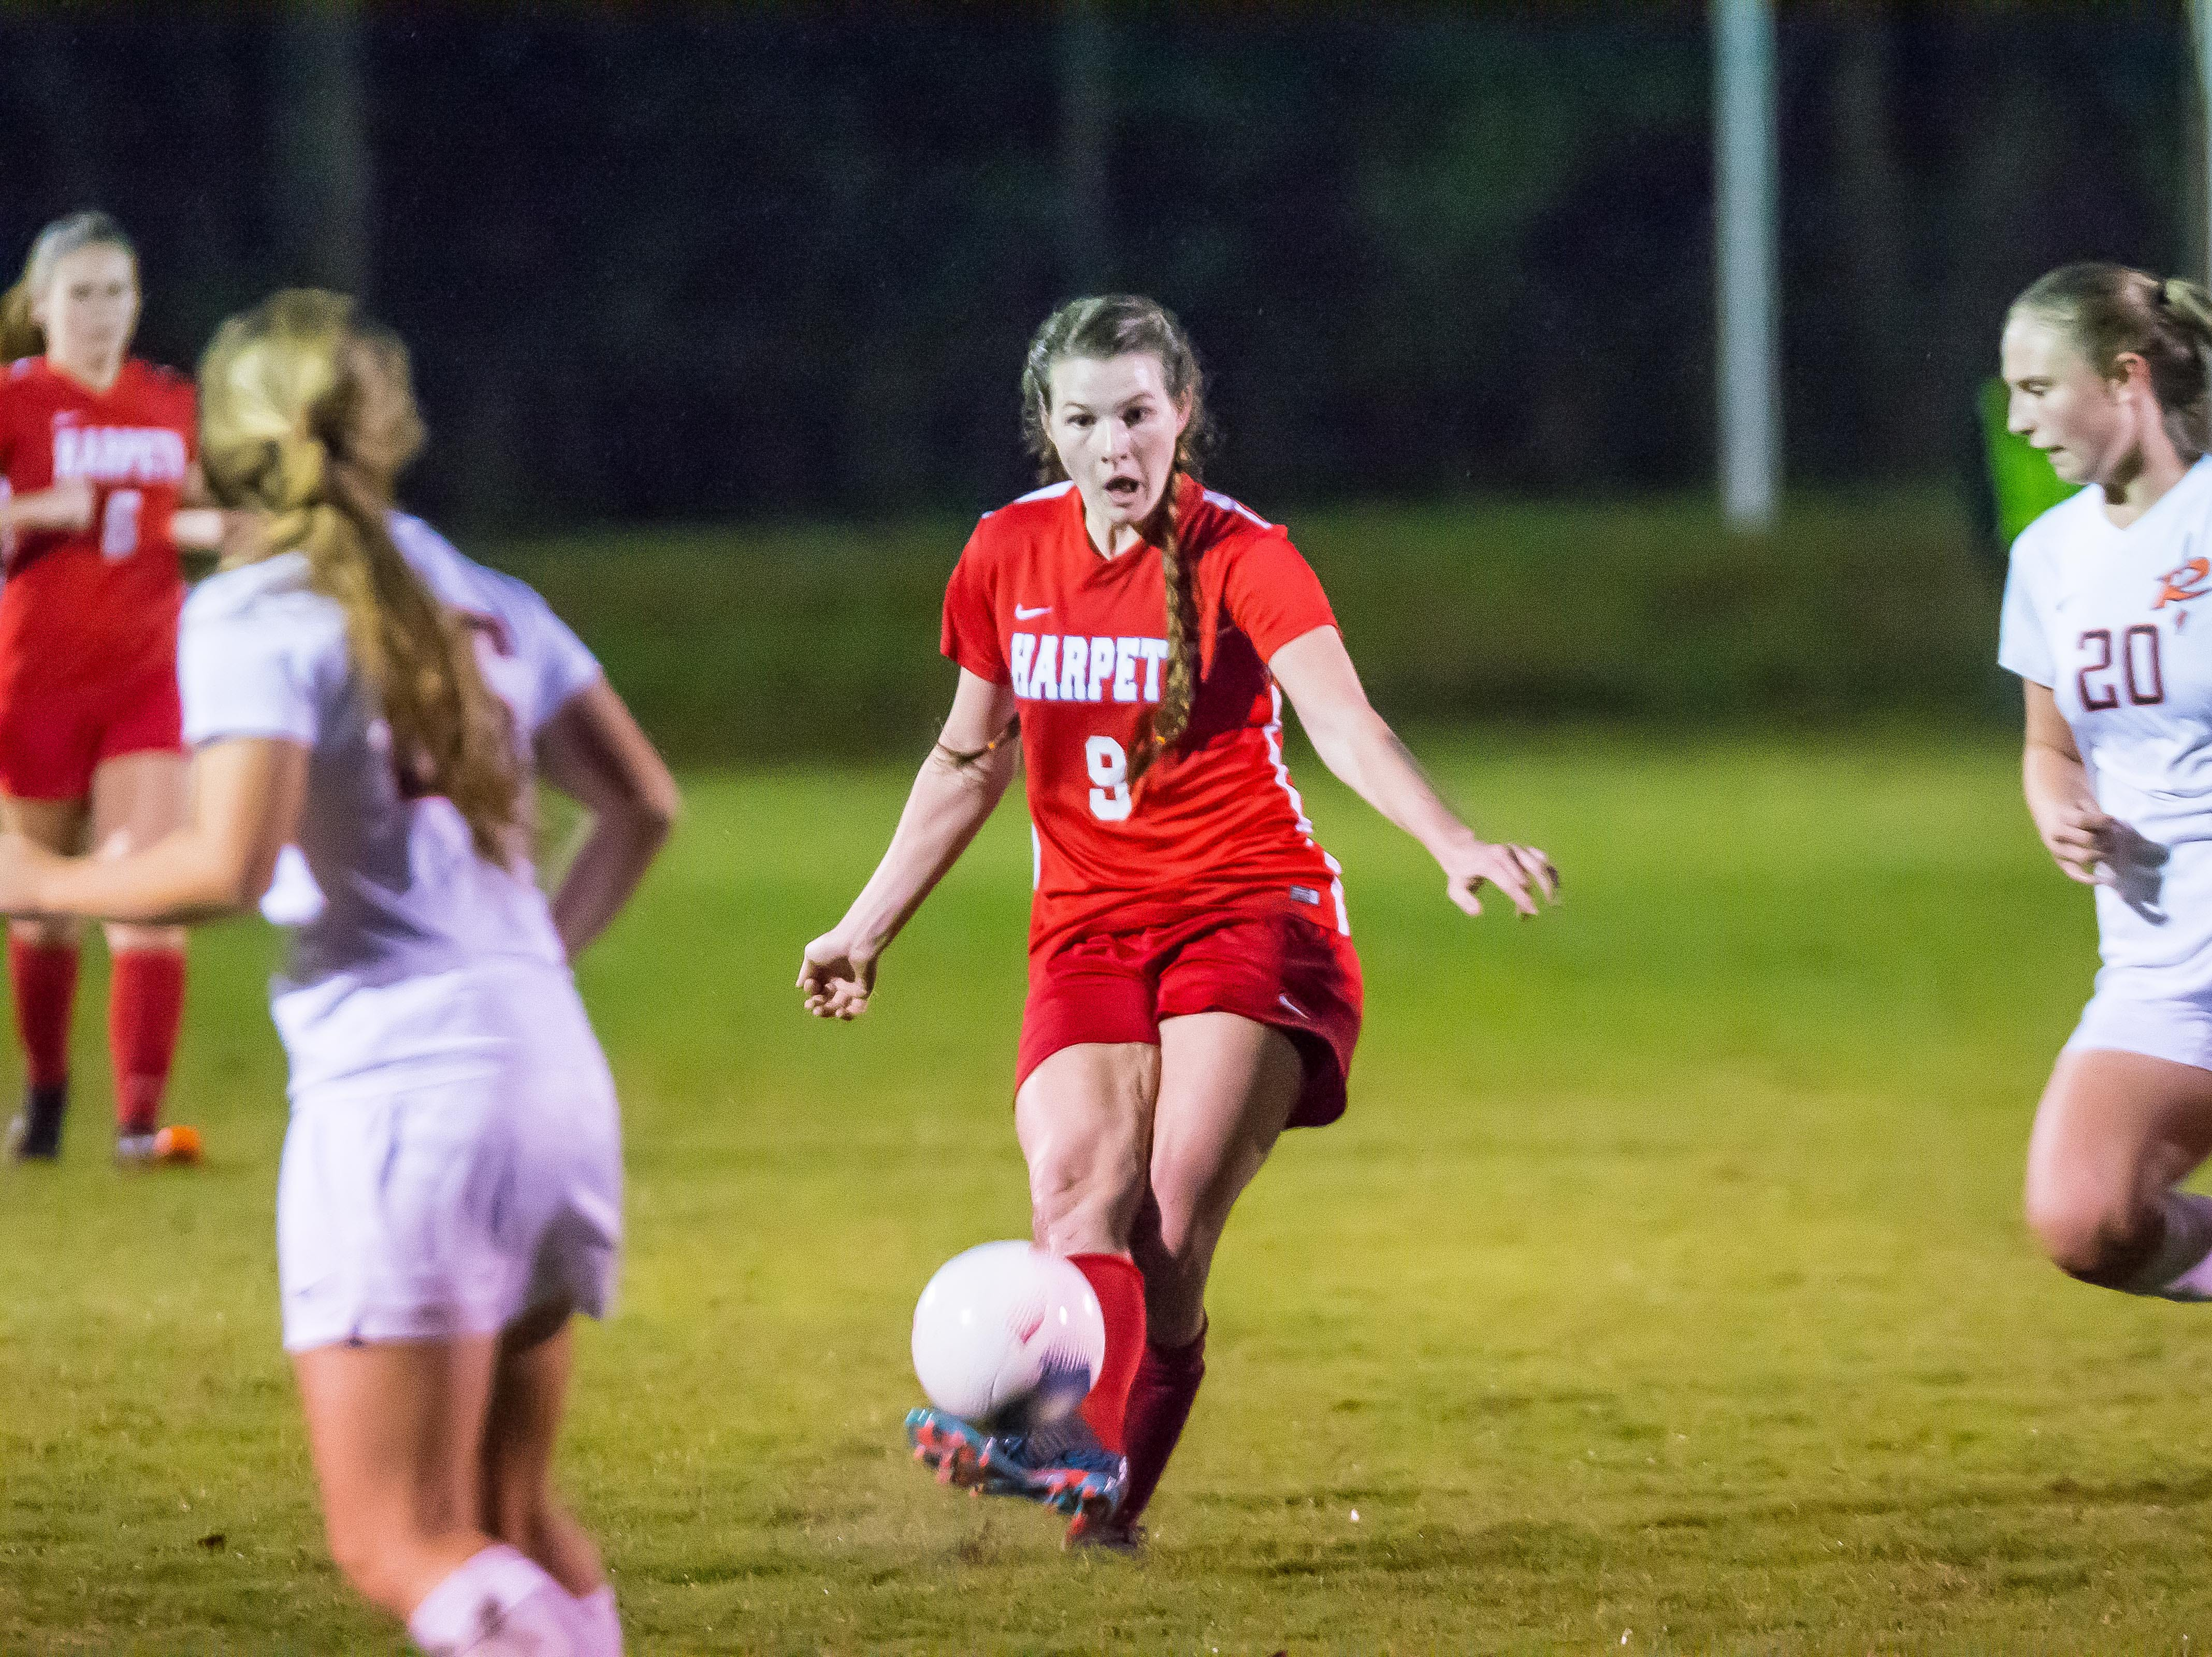 Harpeth's Madison Chester scored the only goal of the 1-0 Harpeth victory.